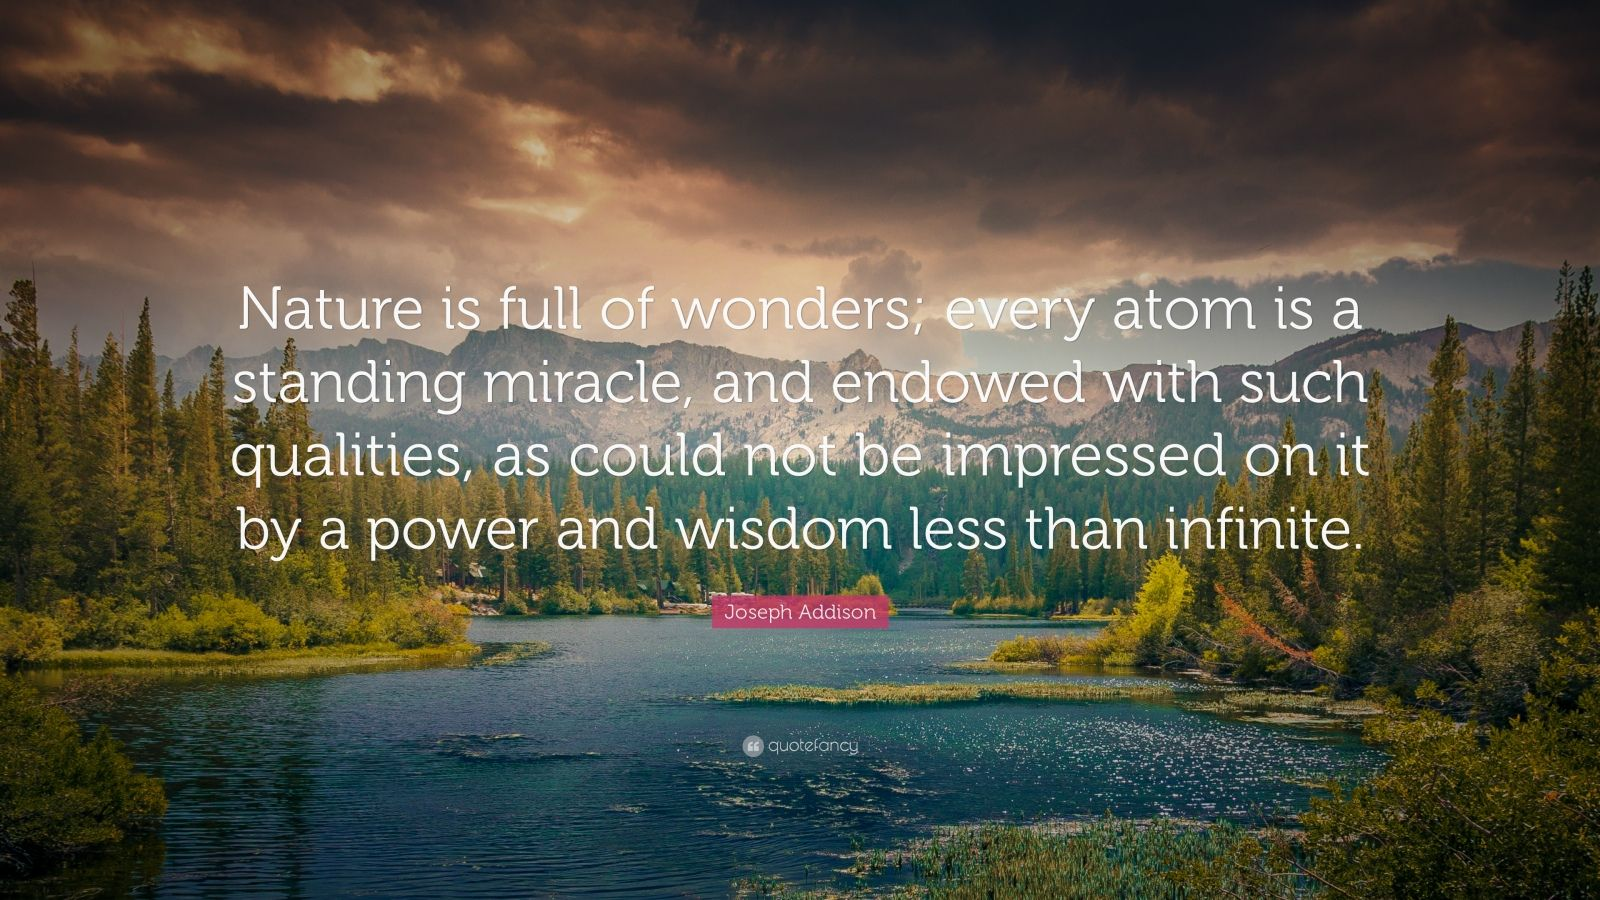 """Joseph Addison Quote: """"Nature is full of wonders; every atom is a standing miracle, and endowed with such qualities, as could not be impressed on it by a power and wisdom less than infinite."""""""